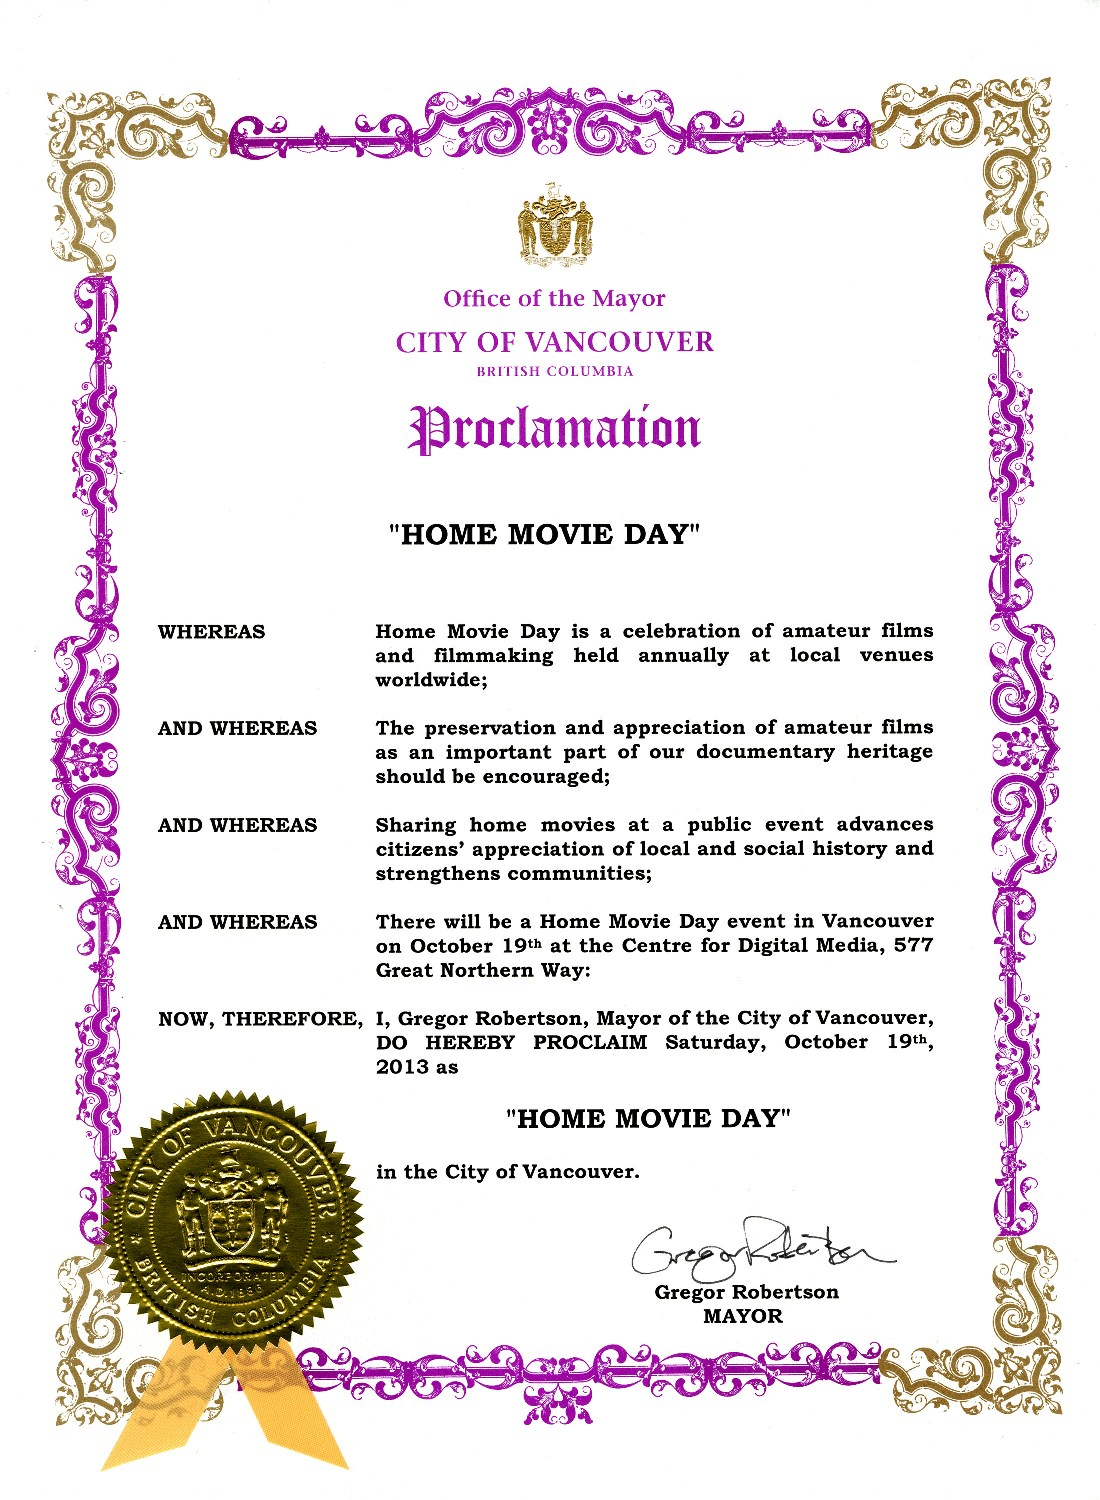 Home Movie Day 2013 proclamation, City of Vancouver